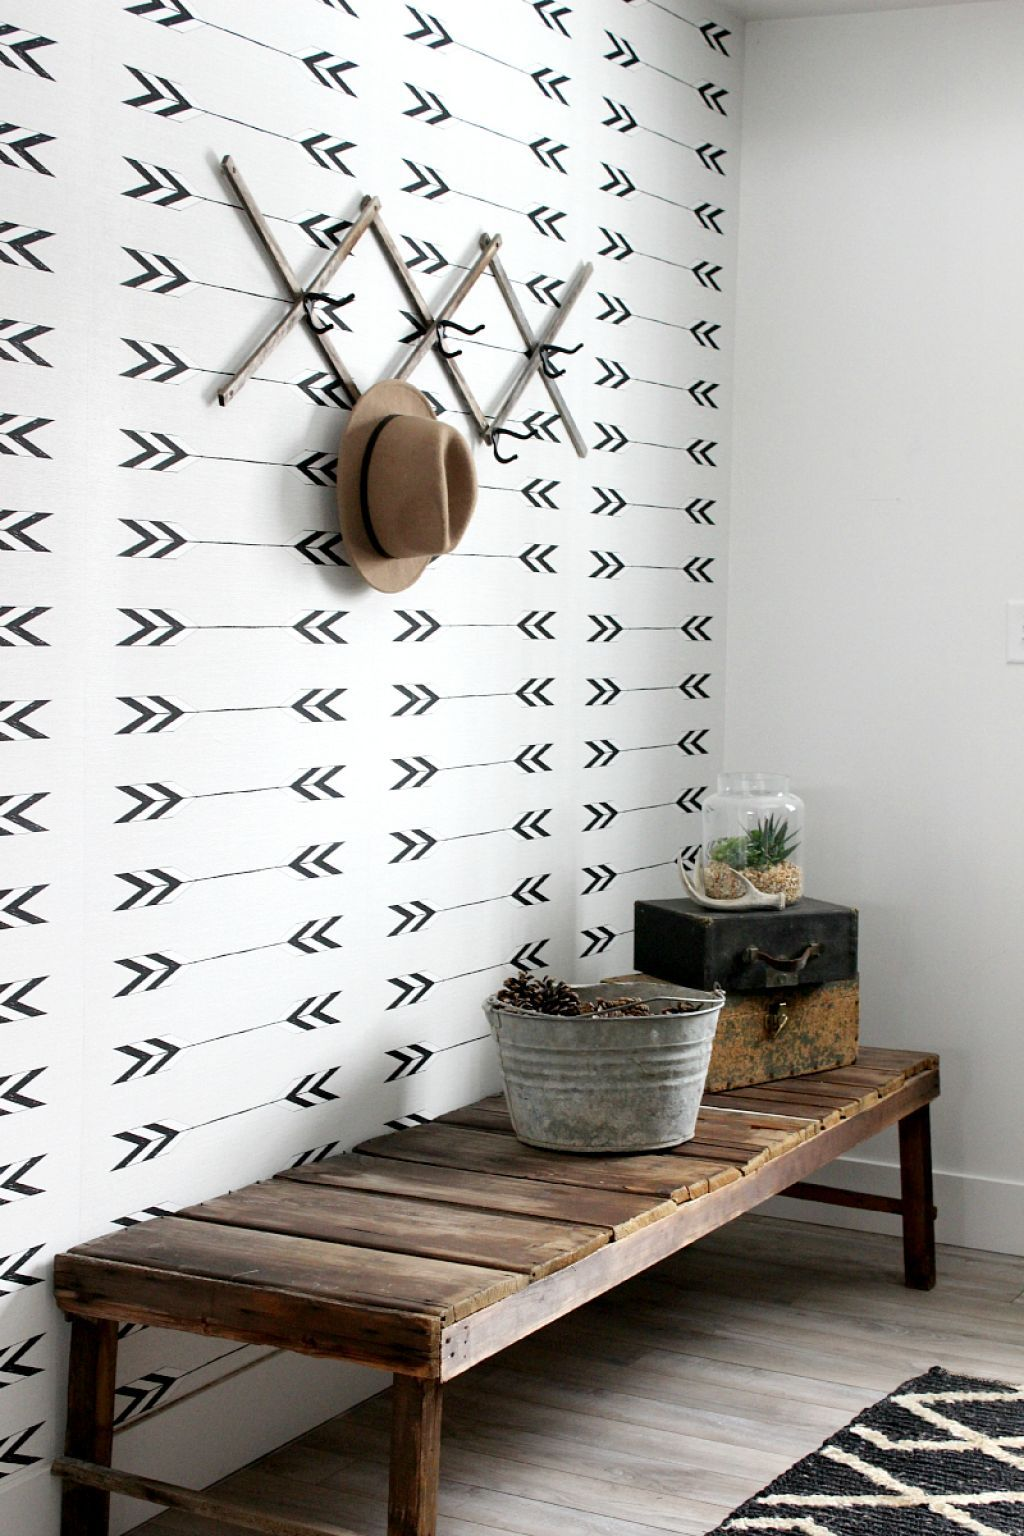 Decorating Your House With Wooden Benches Modern Entryway Decor Home Decor Small Mudroom Ideas